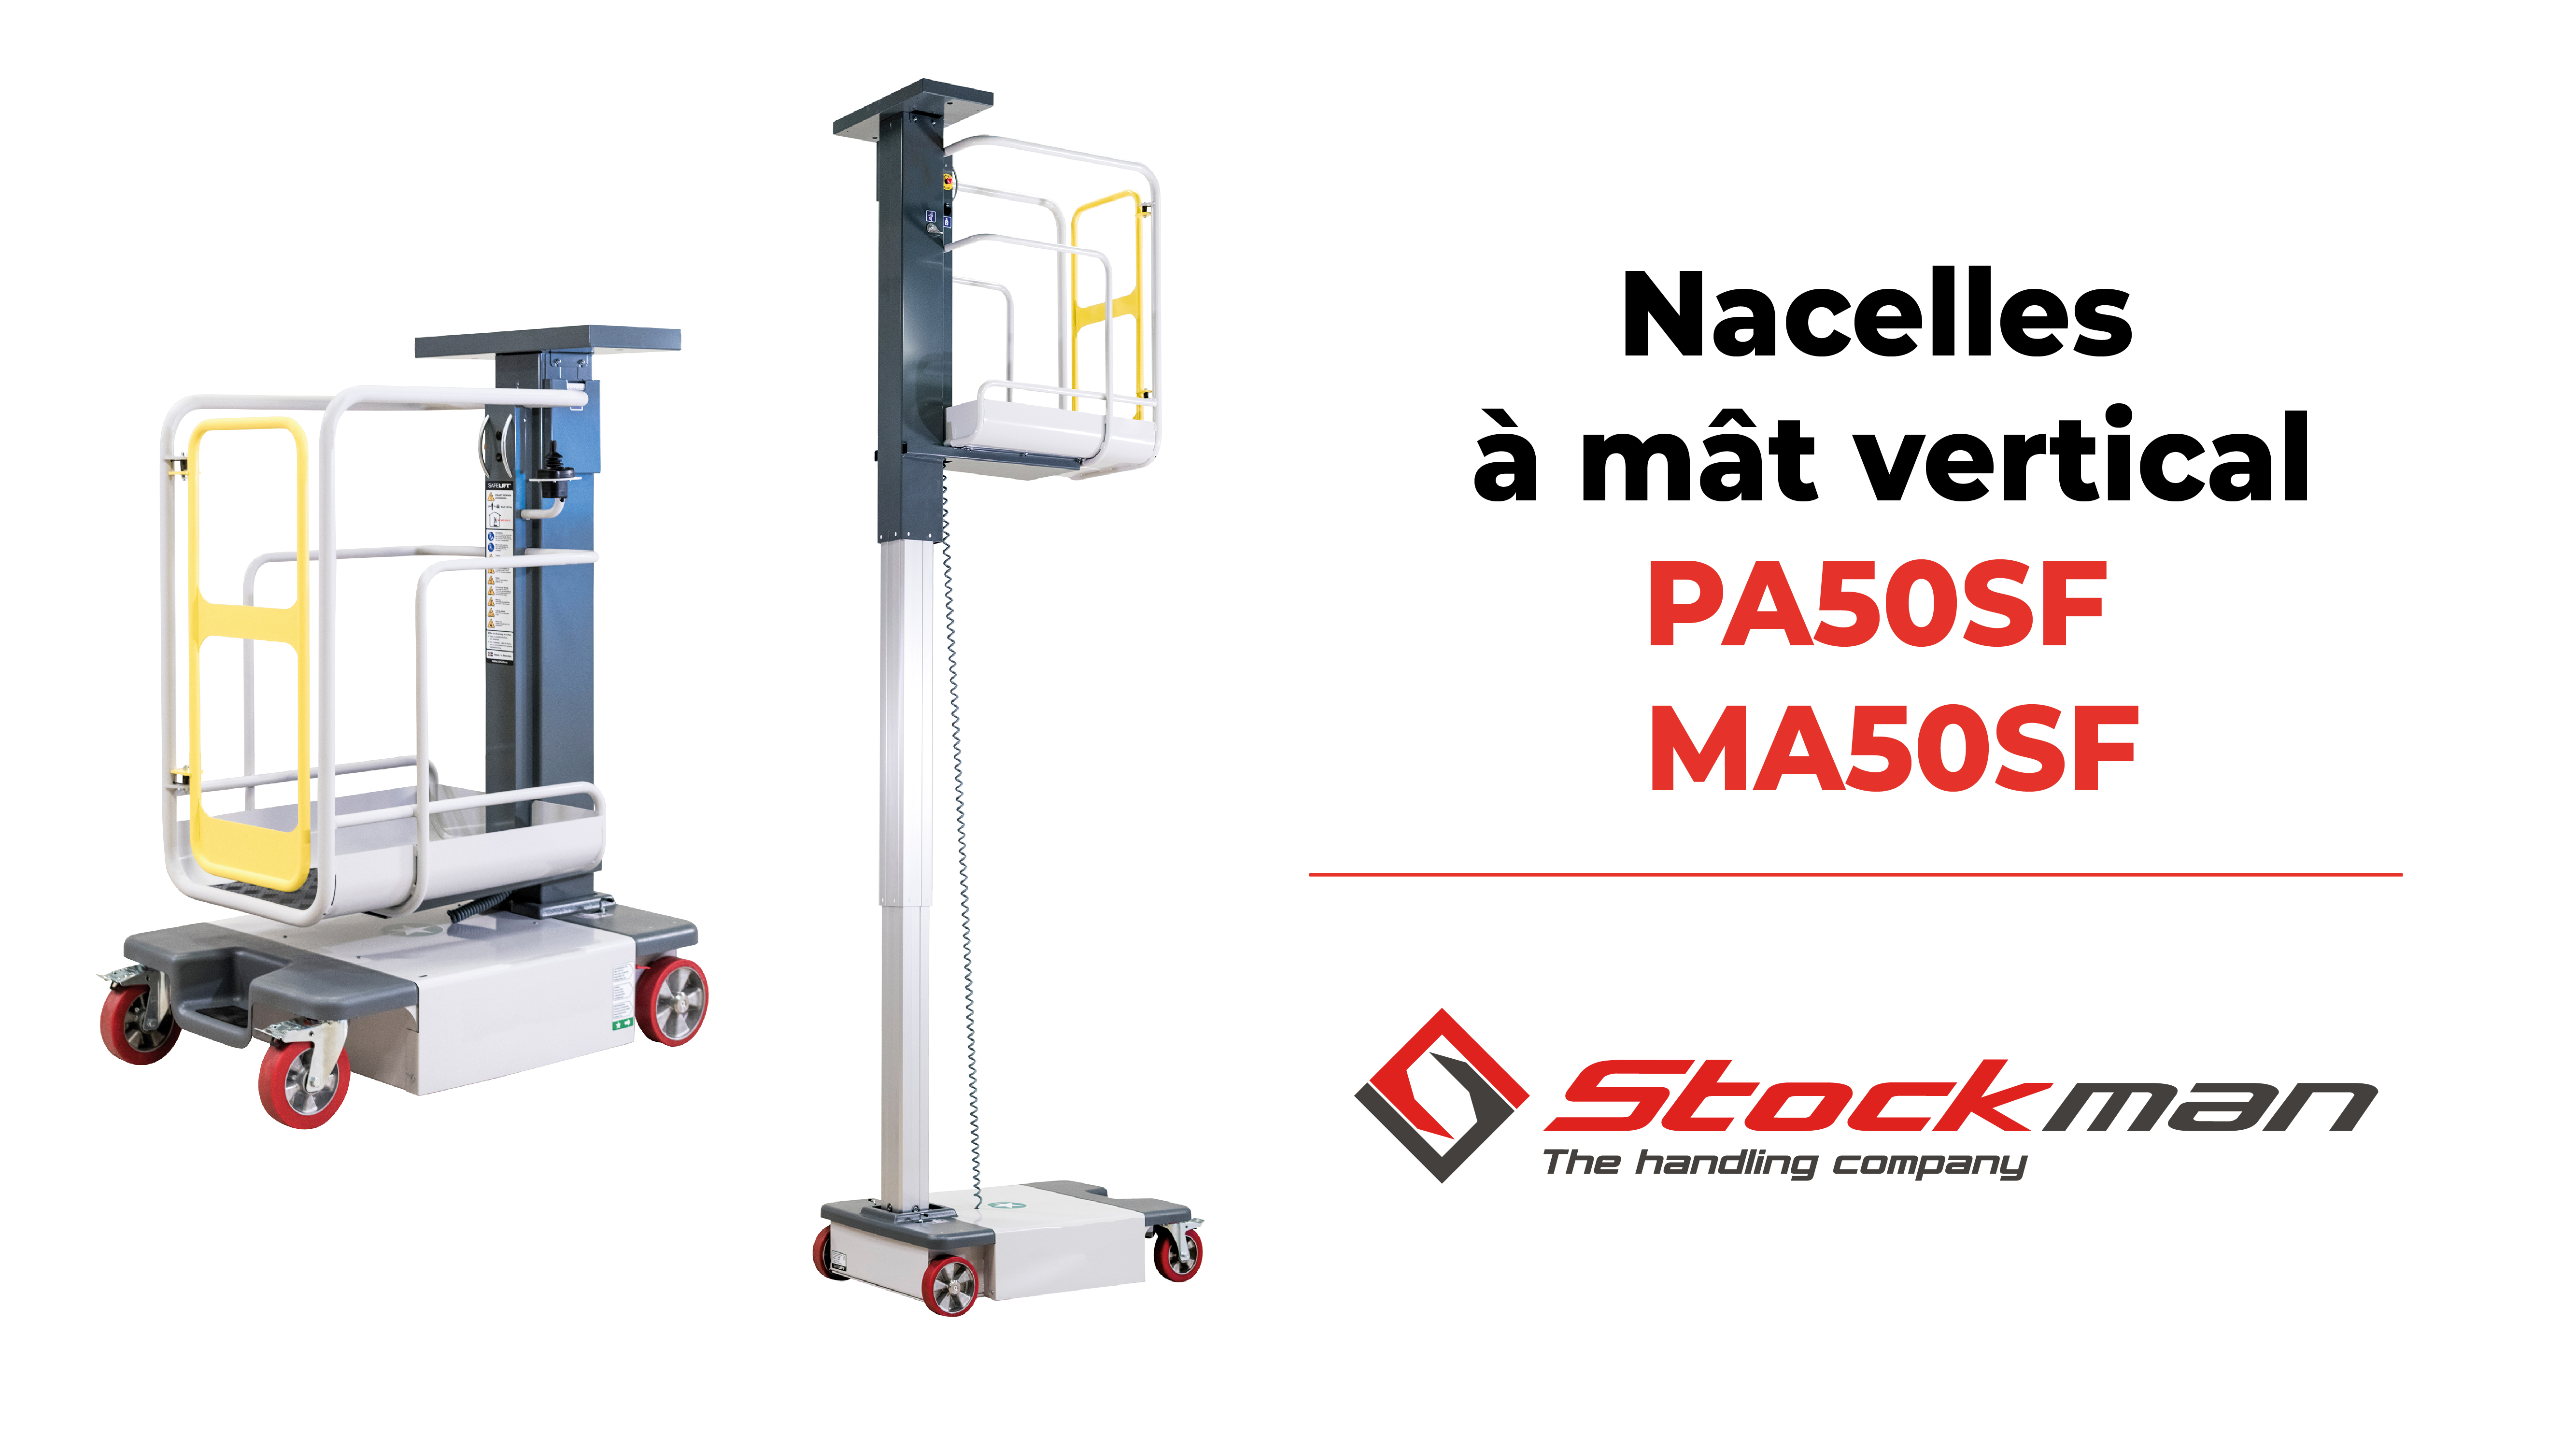 Manual and motorized mini mast lift with 4950mm working height, MA50SF and PA50SF